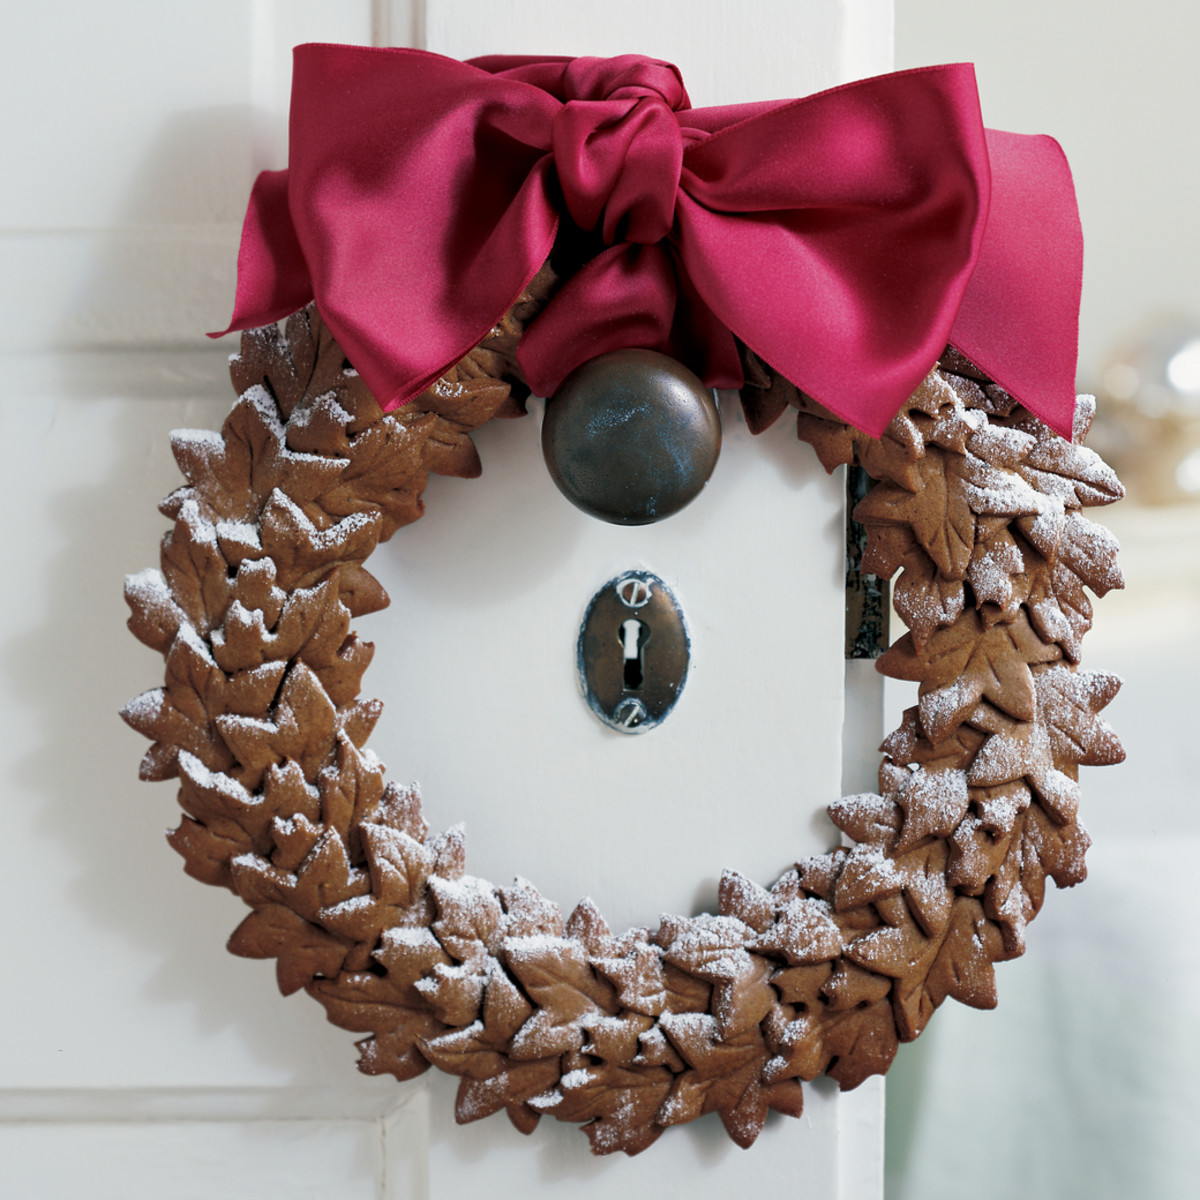 Take Christmas cookies in a different direction by making a wreath out of them.